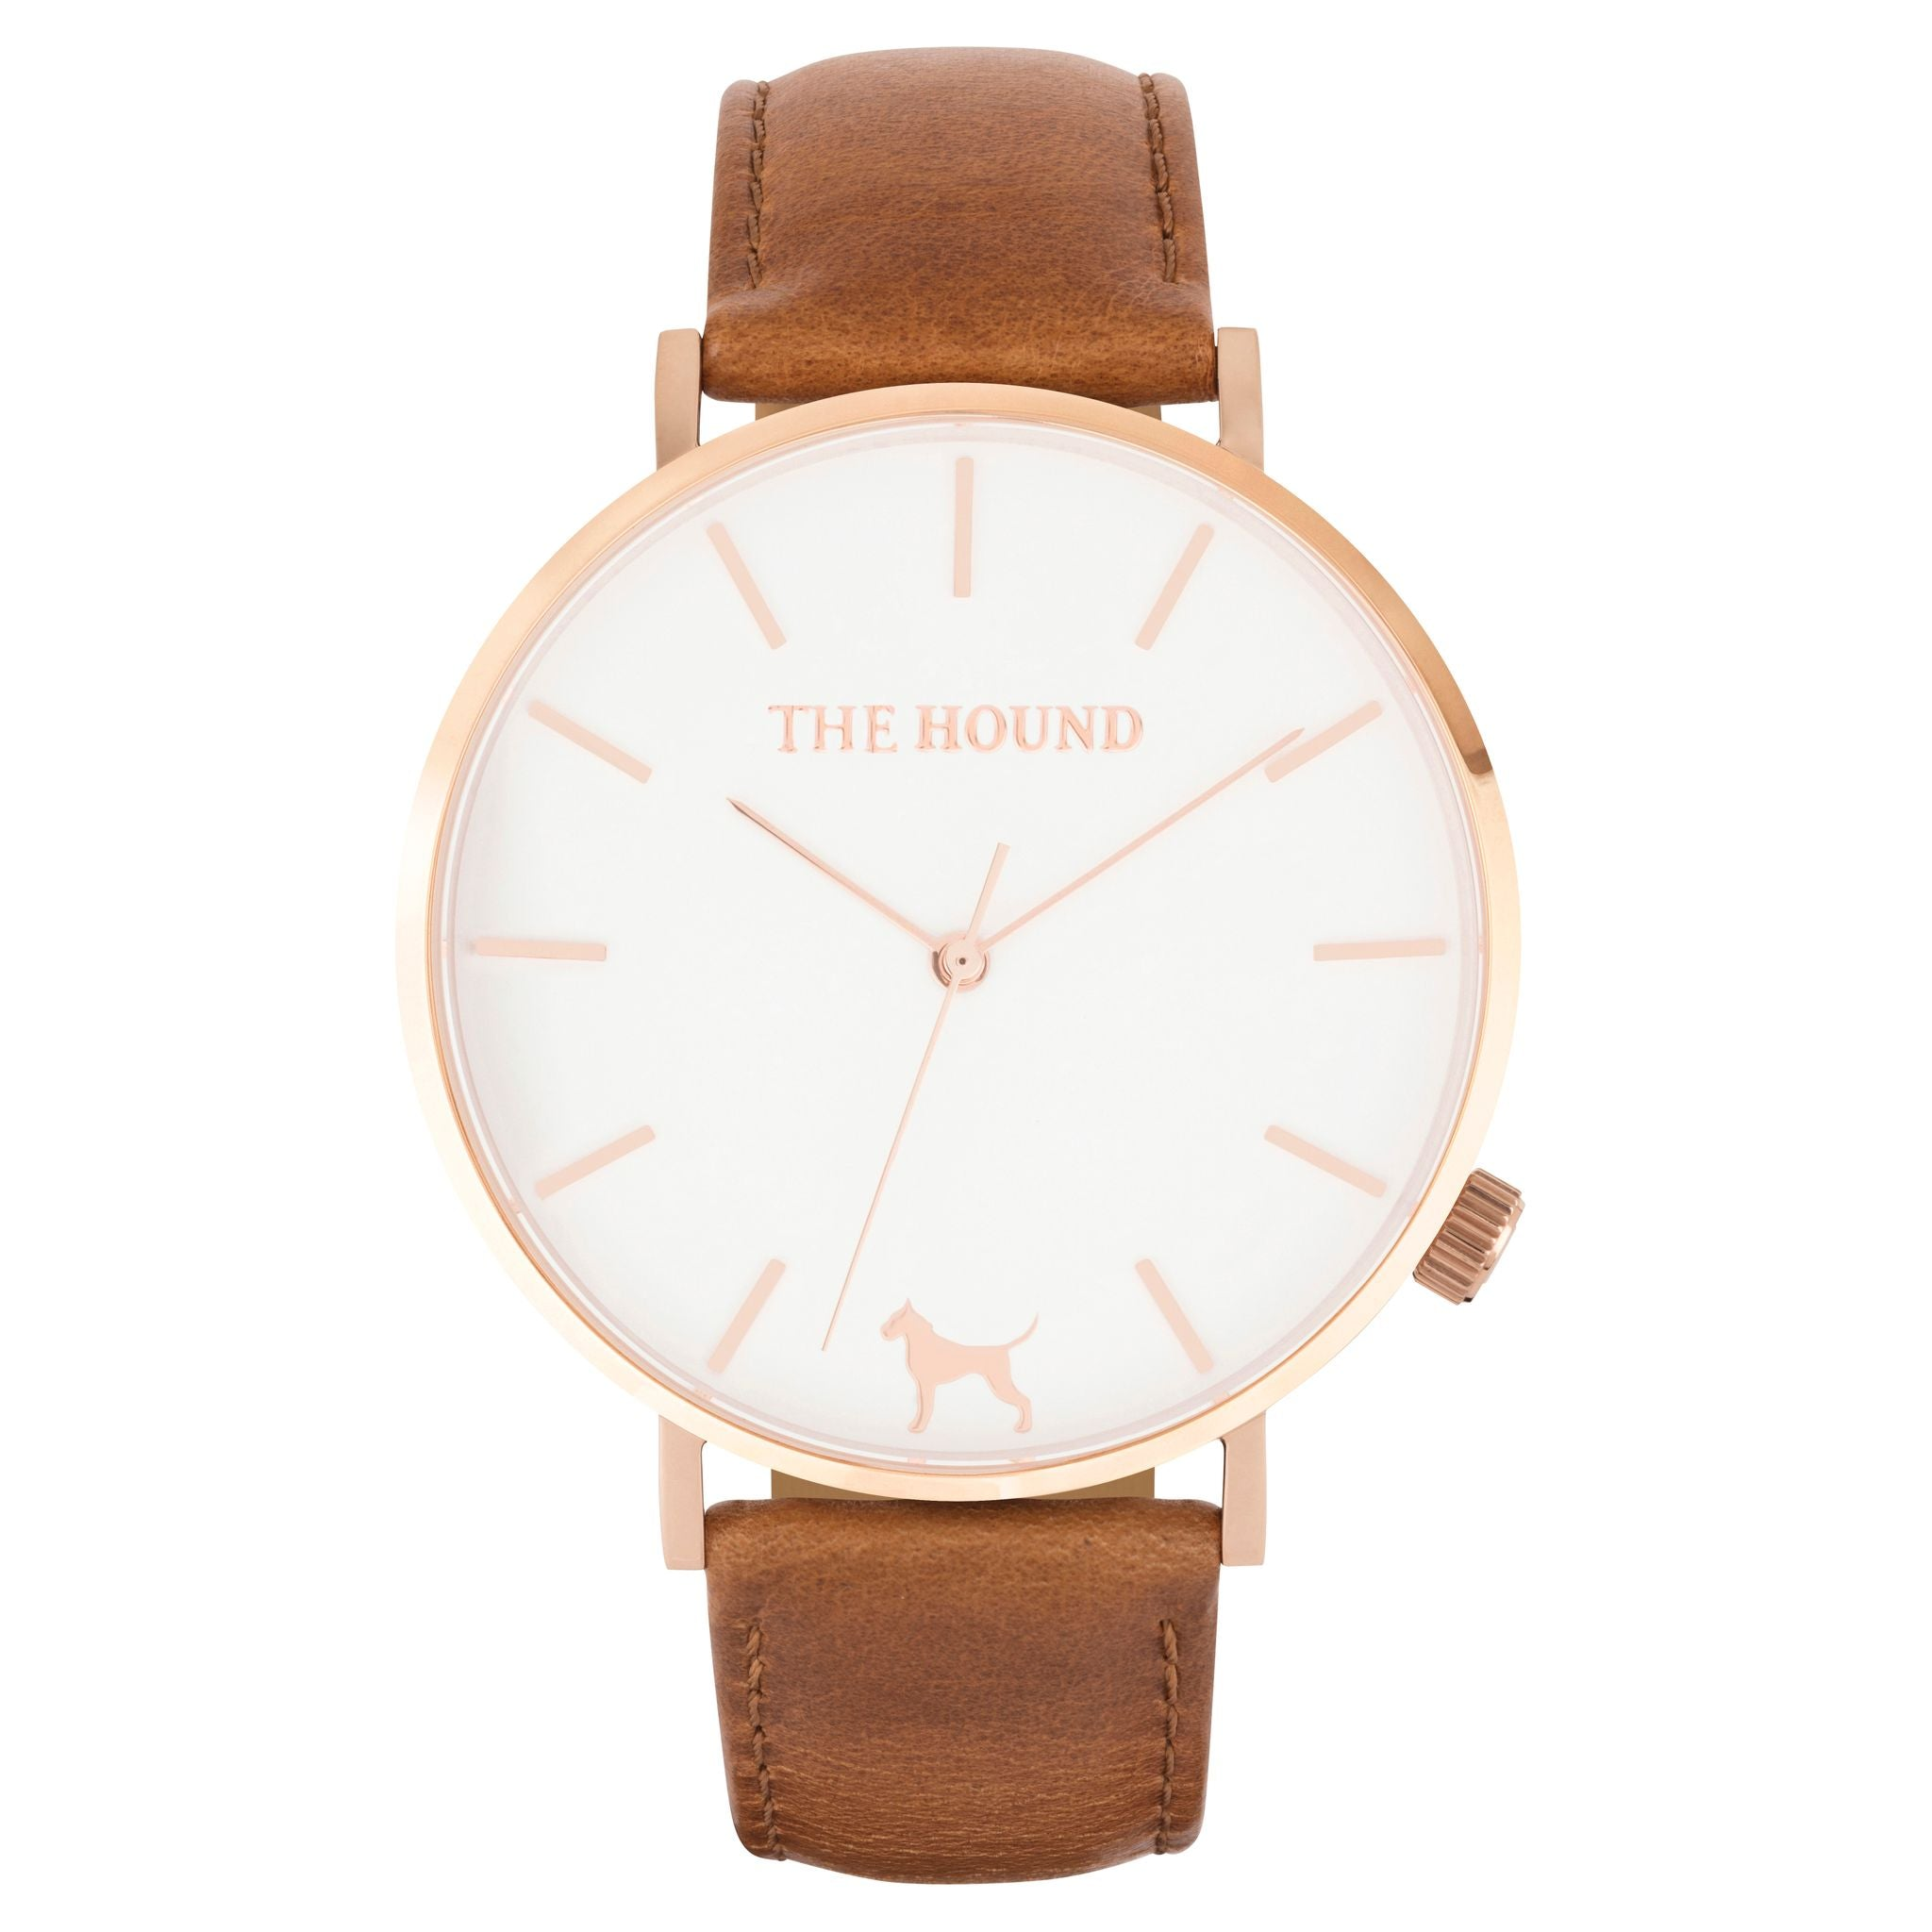 Rose gold & white face watch with tan leather